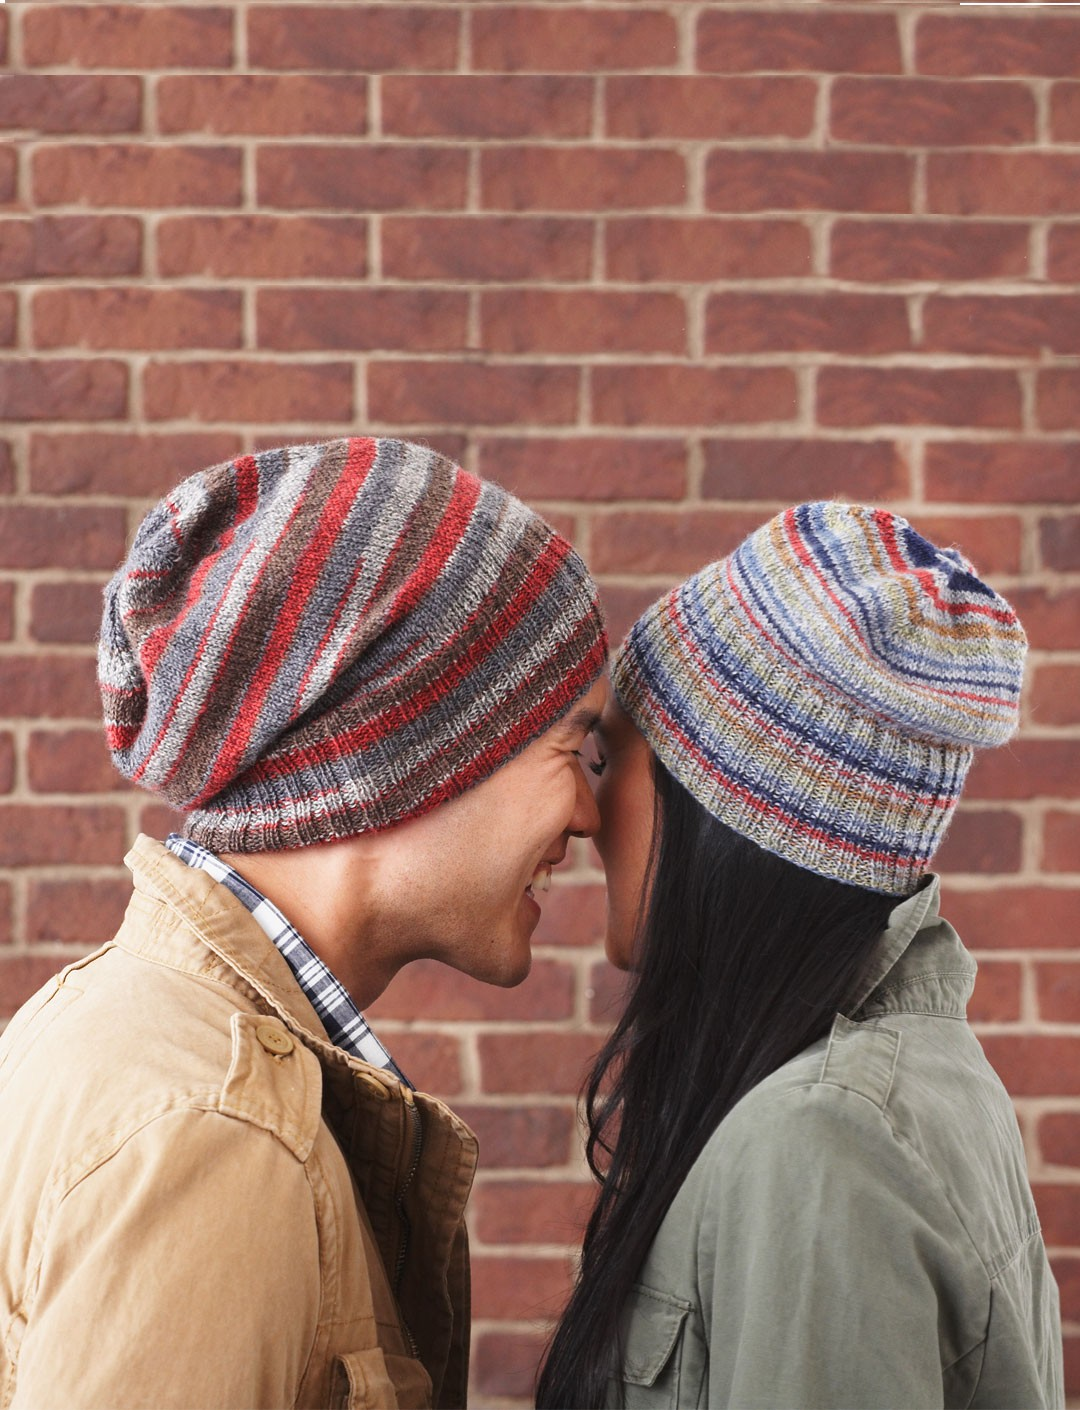 Free Knitting Pattern For Kroy Socks : Patons Classic Wool Worsted - Work Sock Hat (knit) Free ...